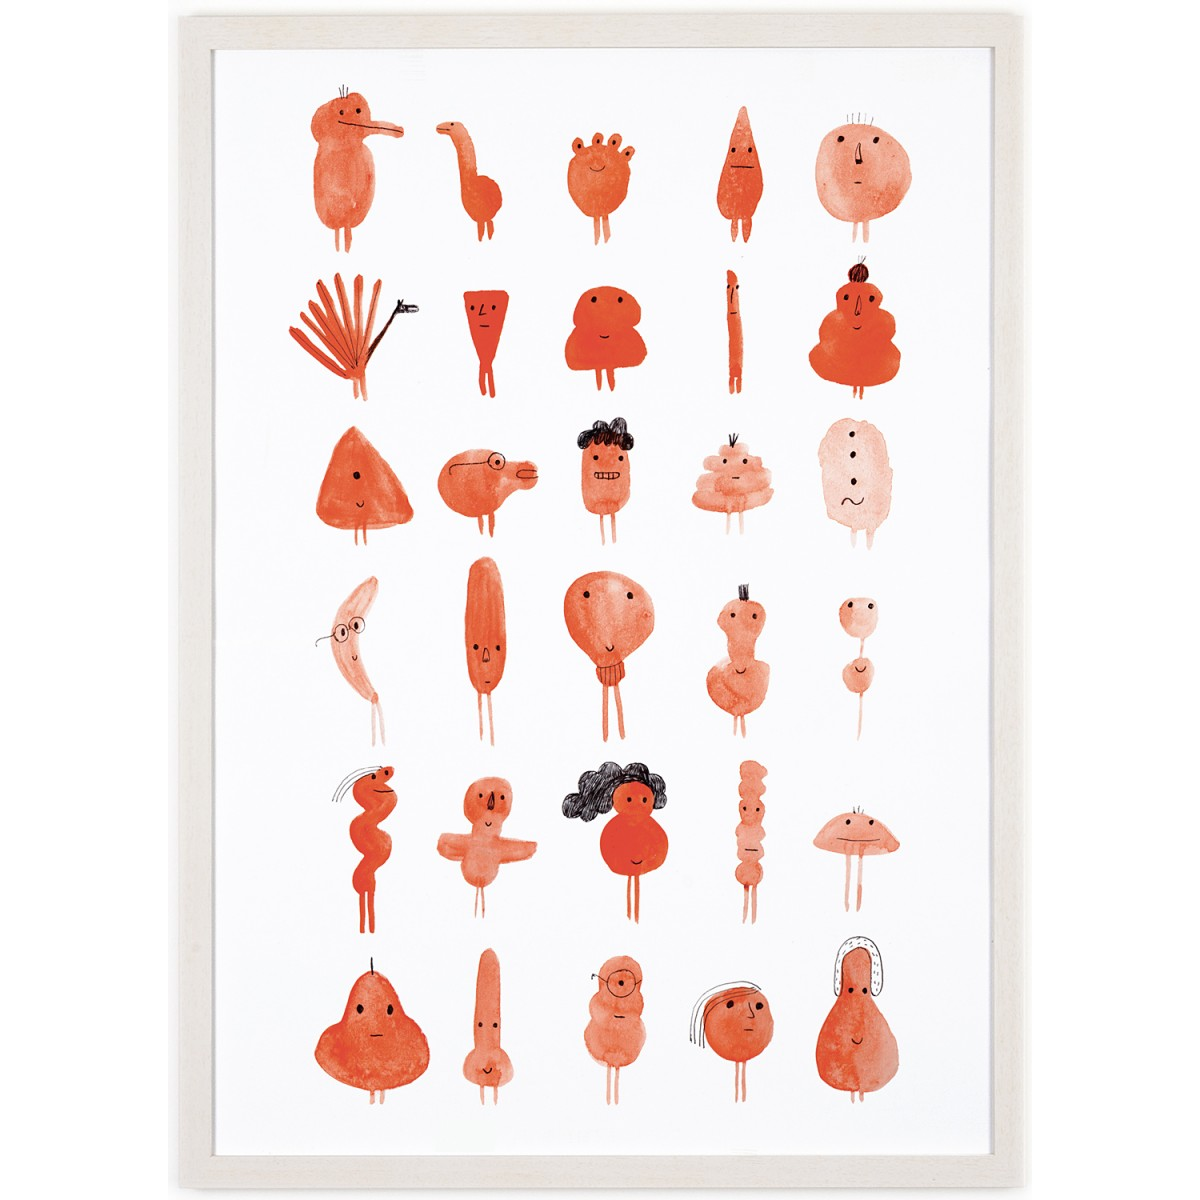 Human Empire Red Characters Poster (50x70cm)